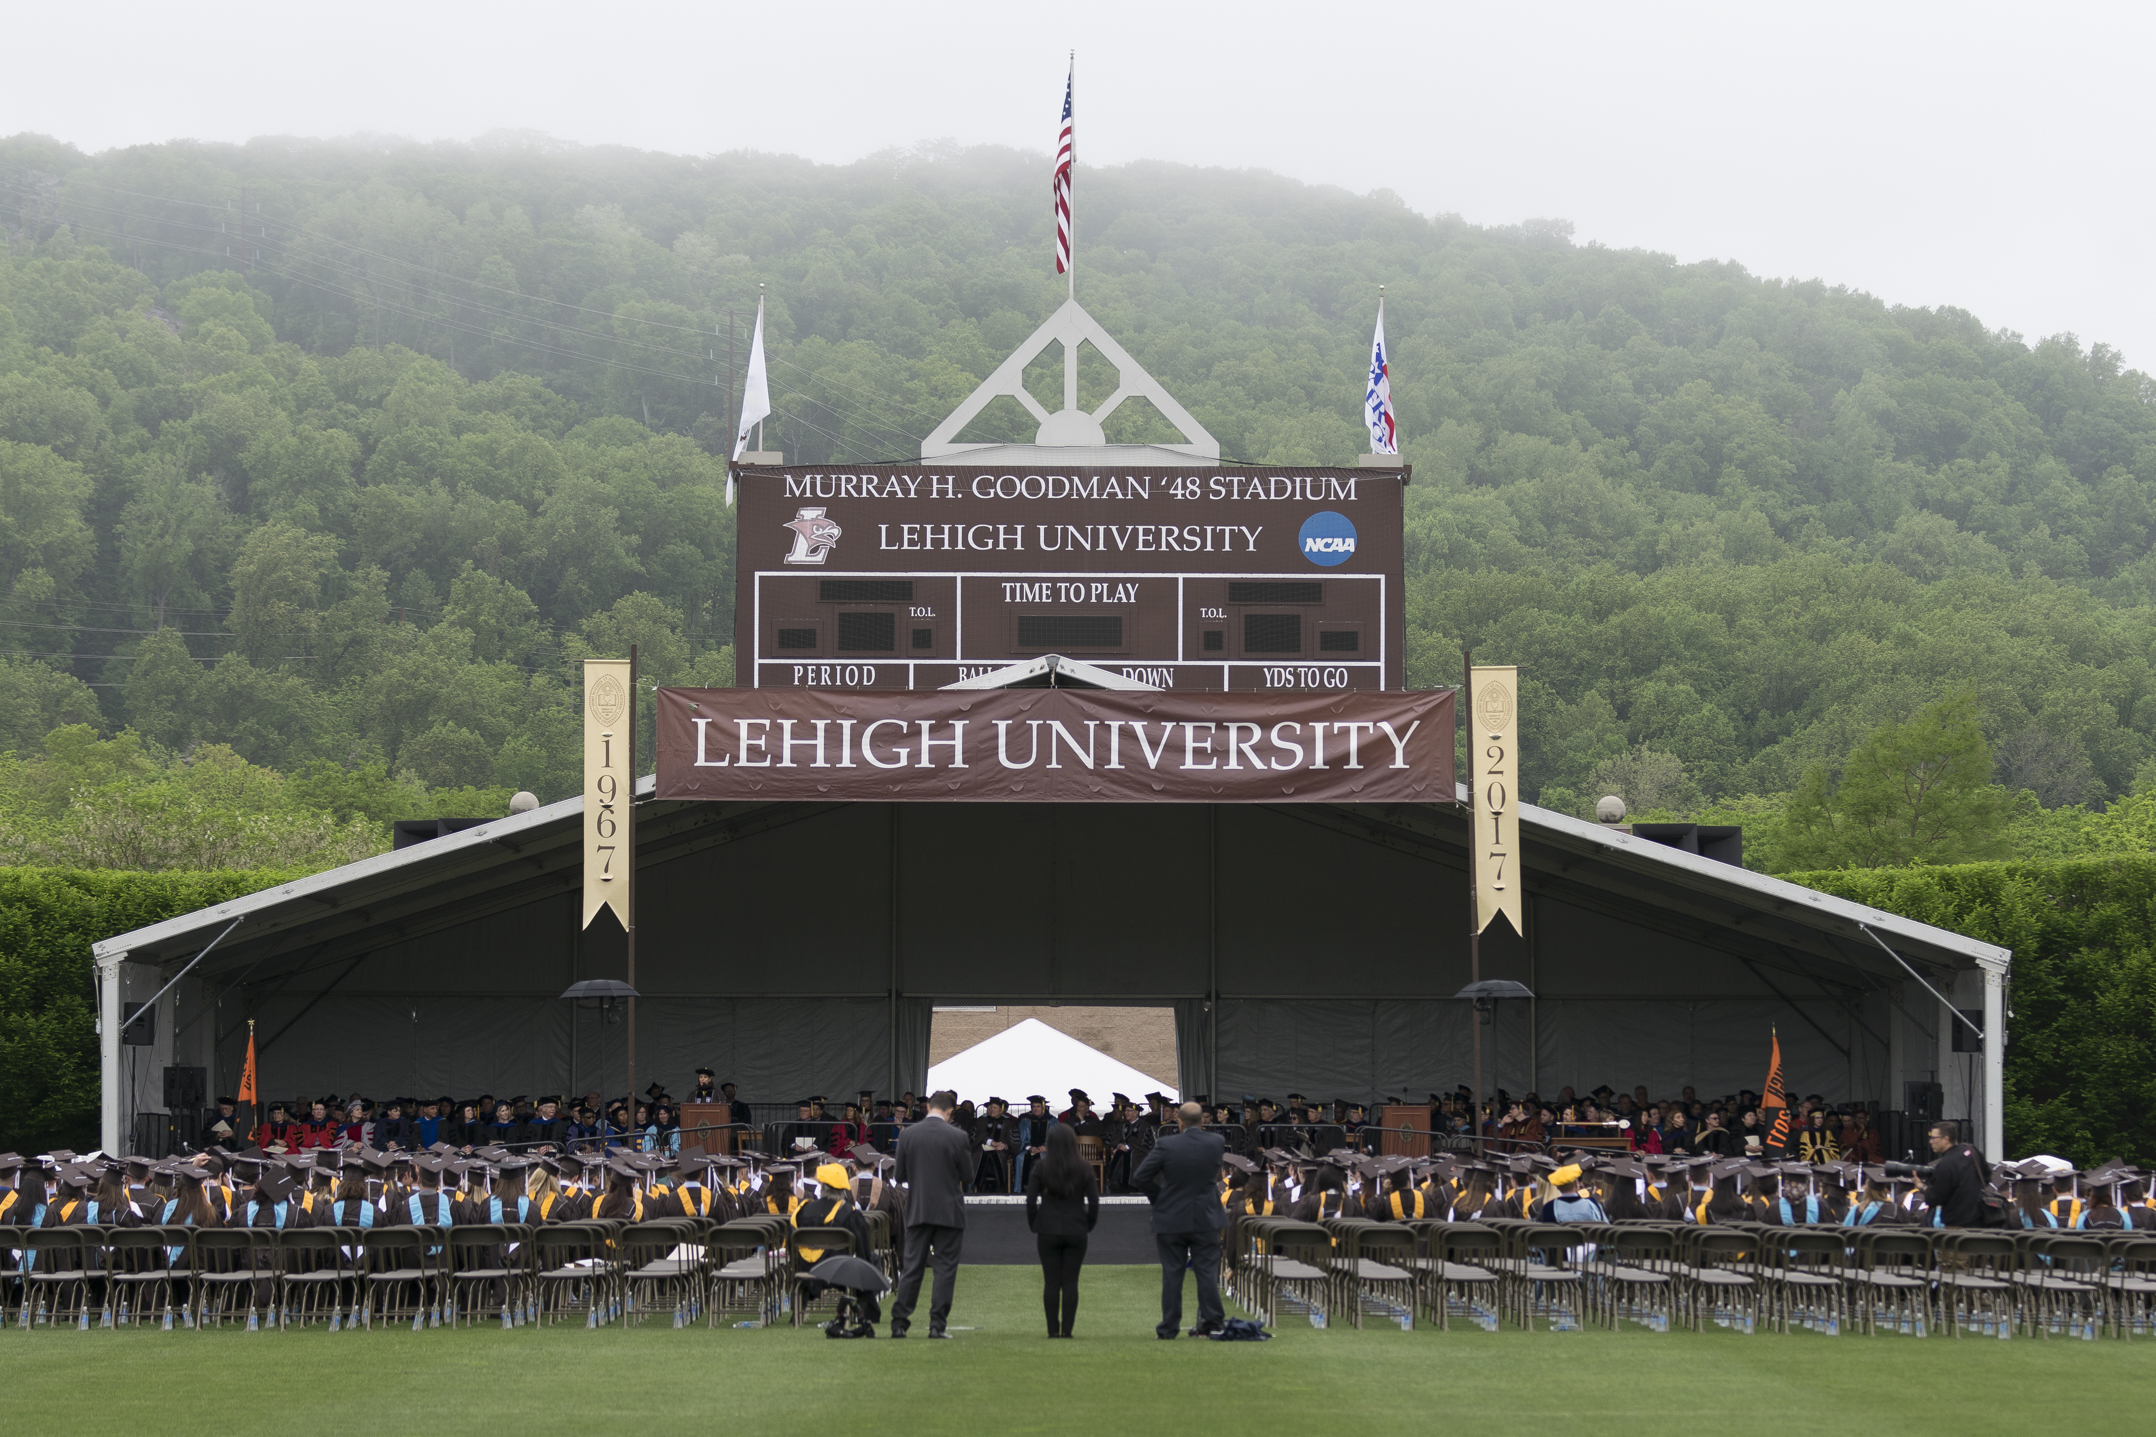 Stephanie Ruhle, '97, addresses the graduating class Monday, May 22, 2017, in Goodman Stadium. Ruhle admitted to struggling as an undergraduate student, but 20 years later, she encouraged the class of 2017 to appreciate the opportunities Lehigh provides. (Roshan Giyanani/B&W Staff)